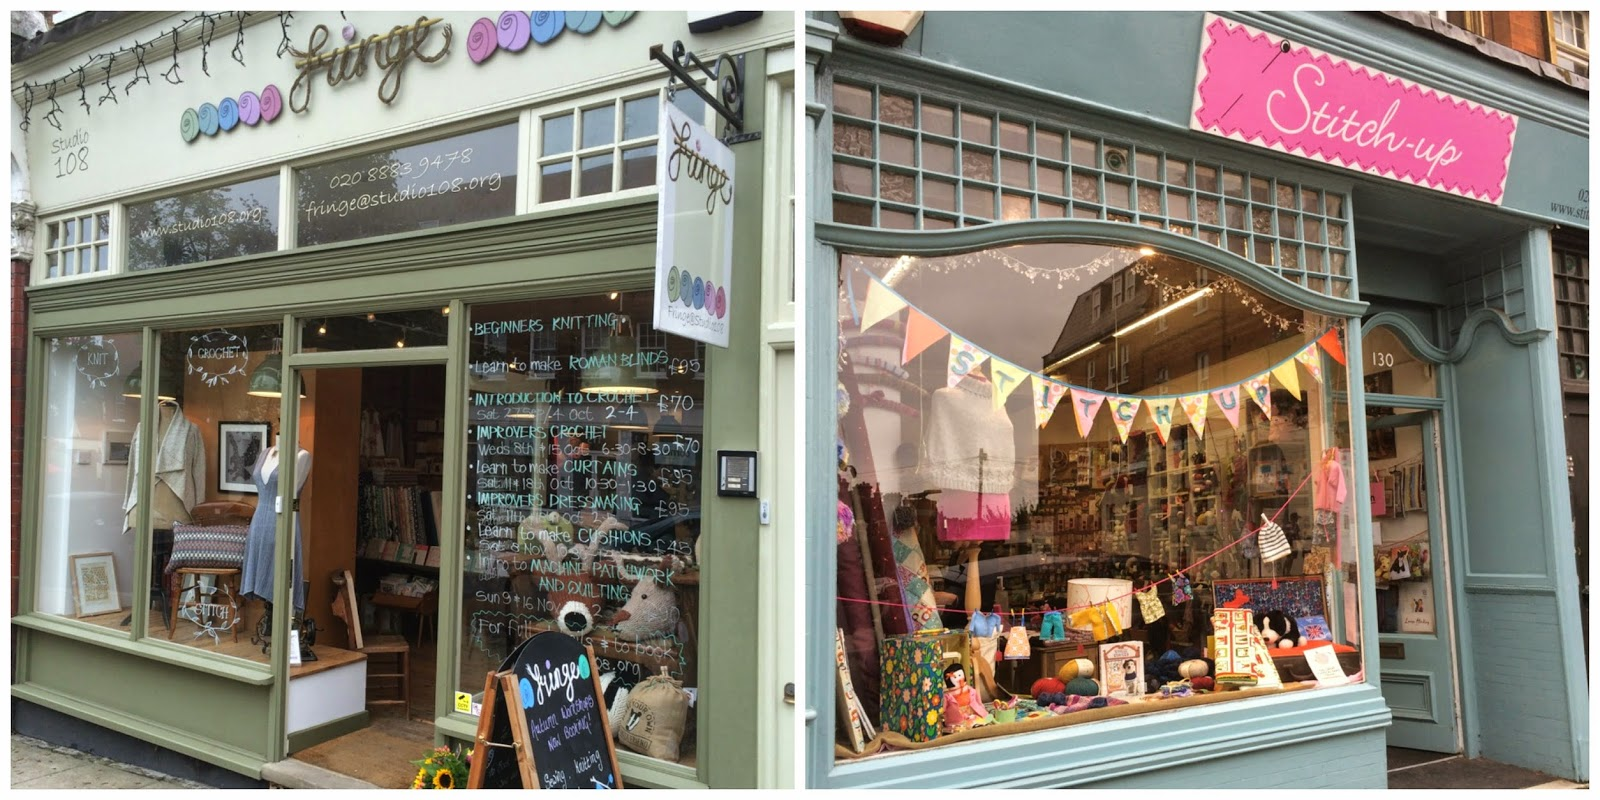 Two of the new shops that joined us this year: Fringe and Stitch Up